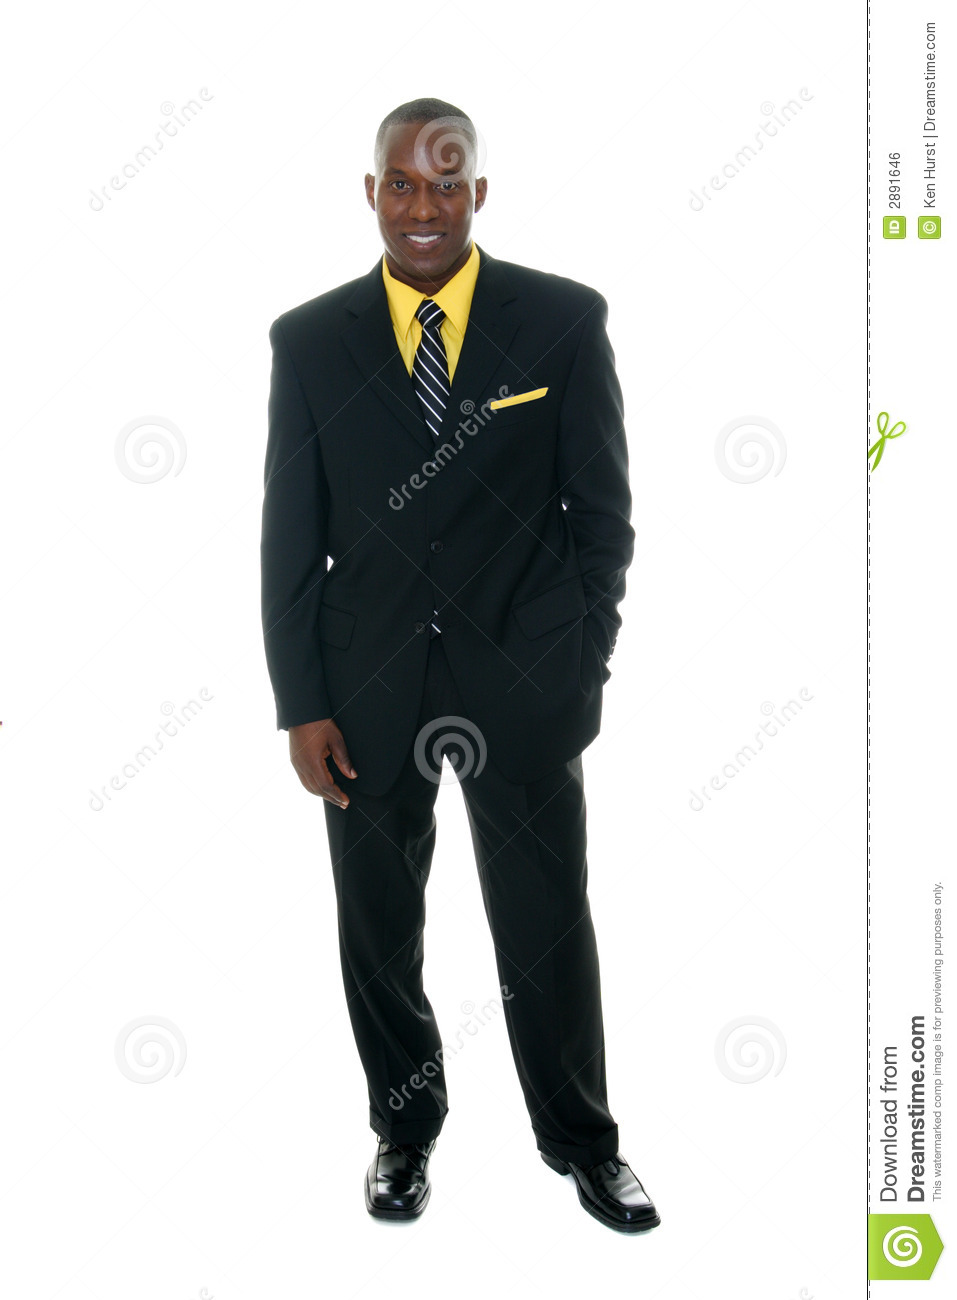 Business Man In Black Suit 5 Royalty Free Stock Image - Image: 2891646